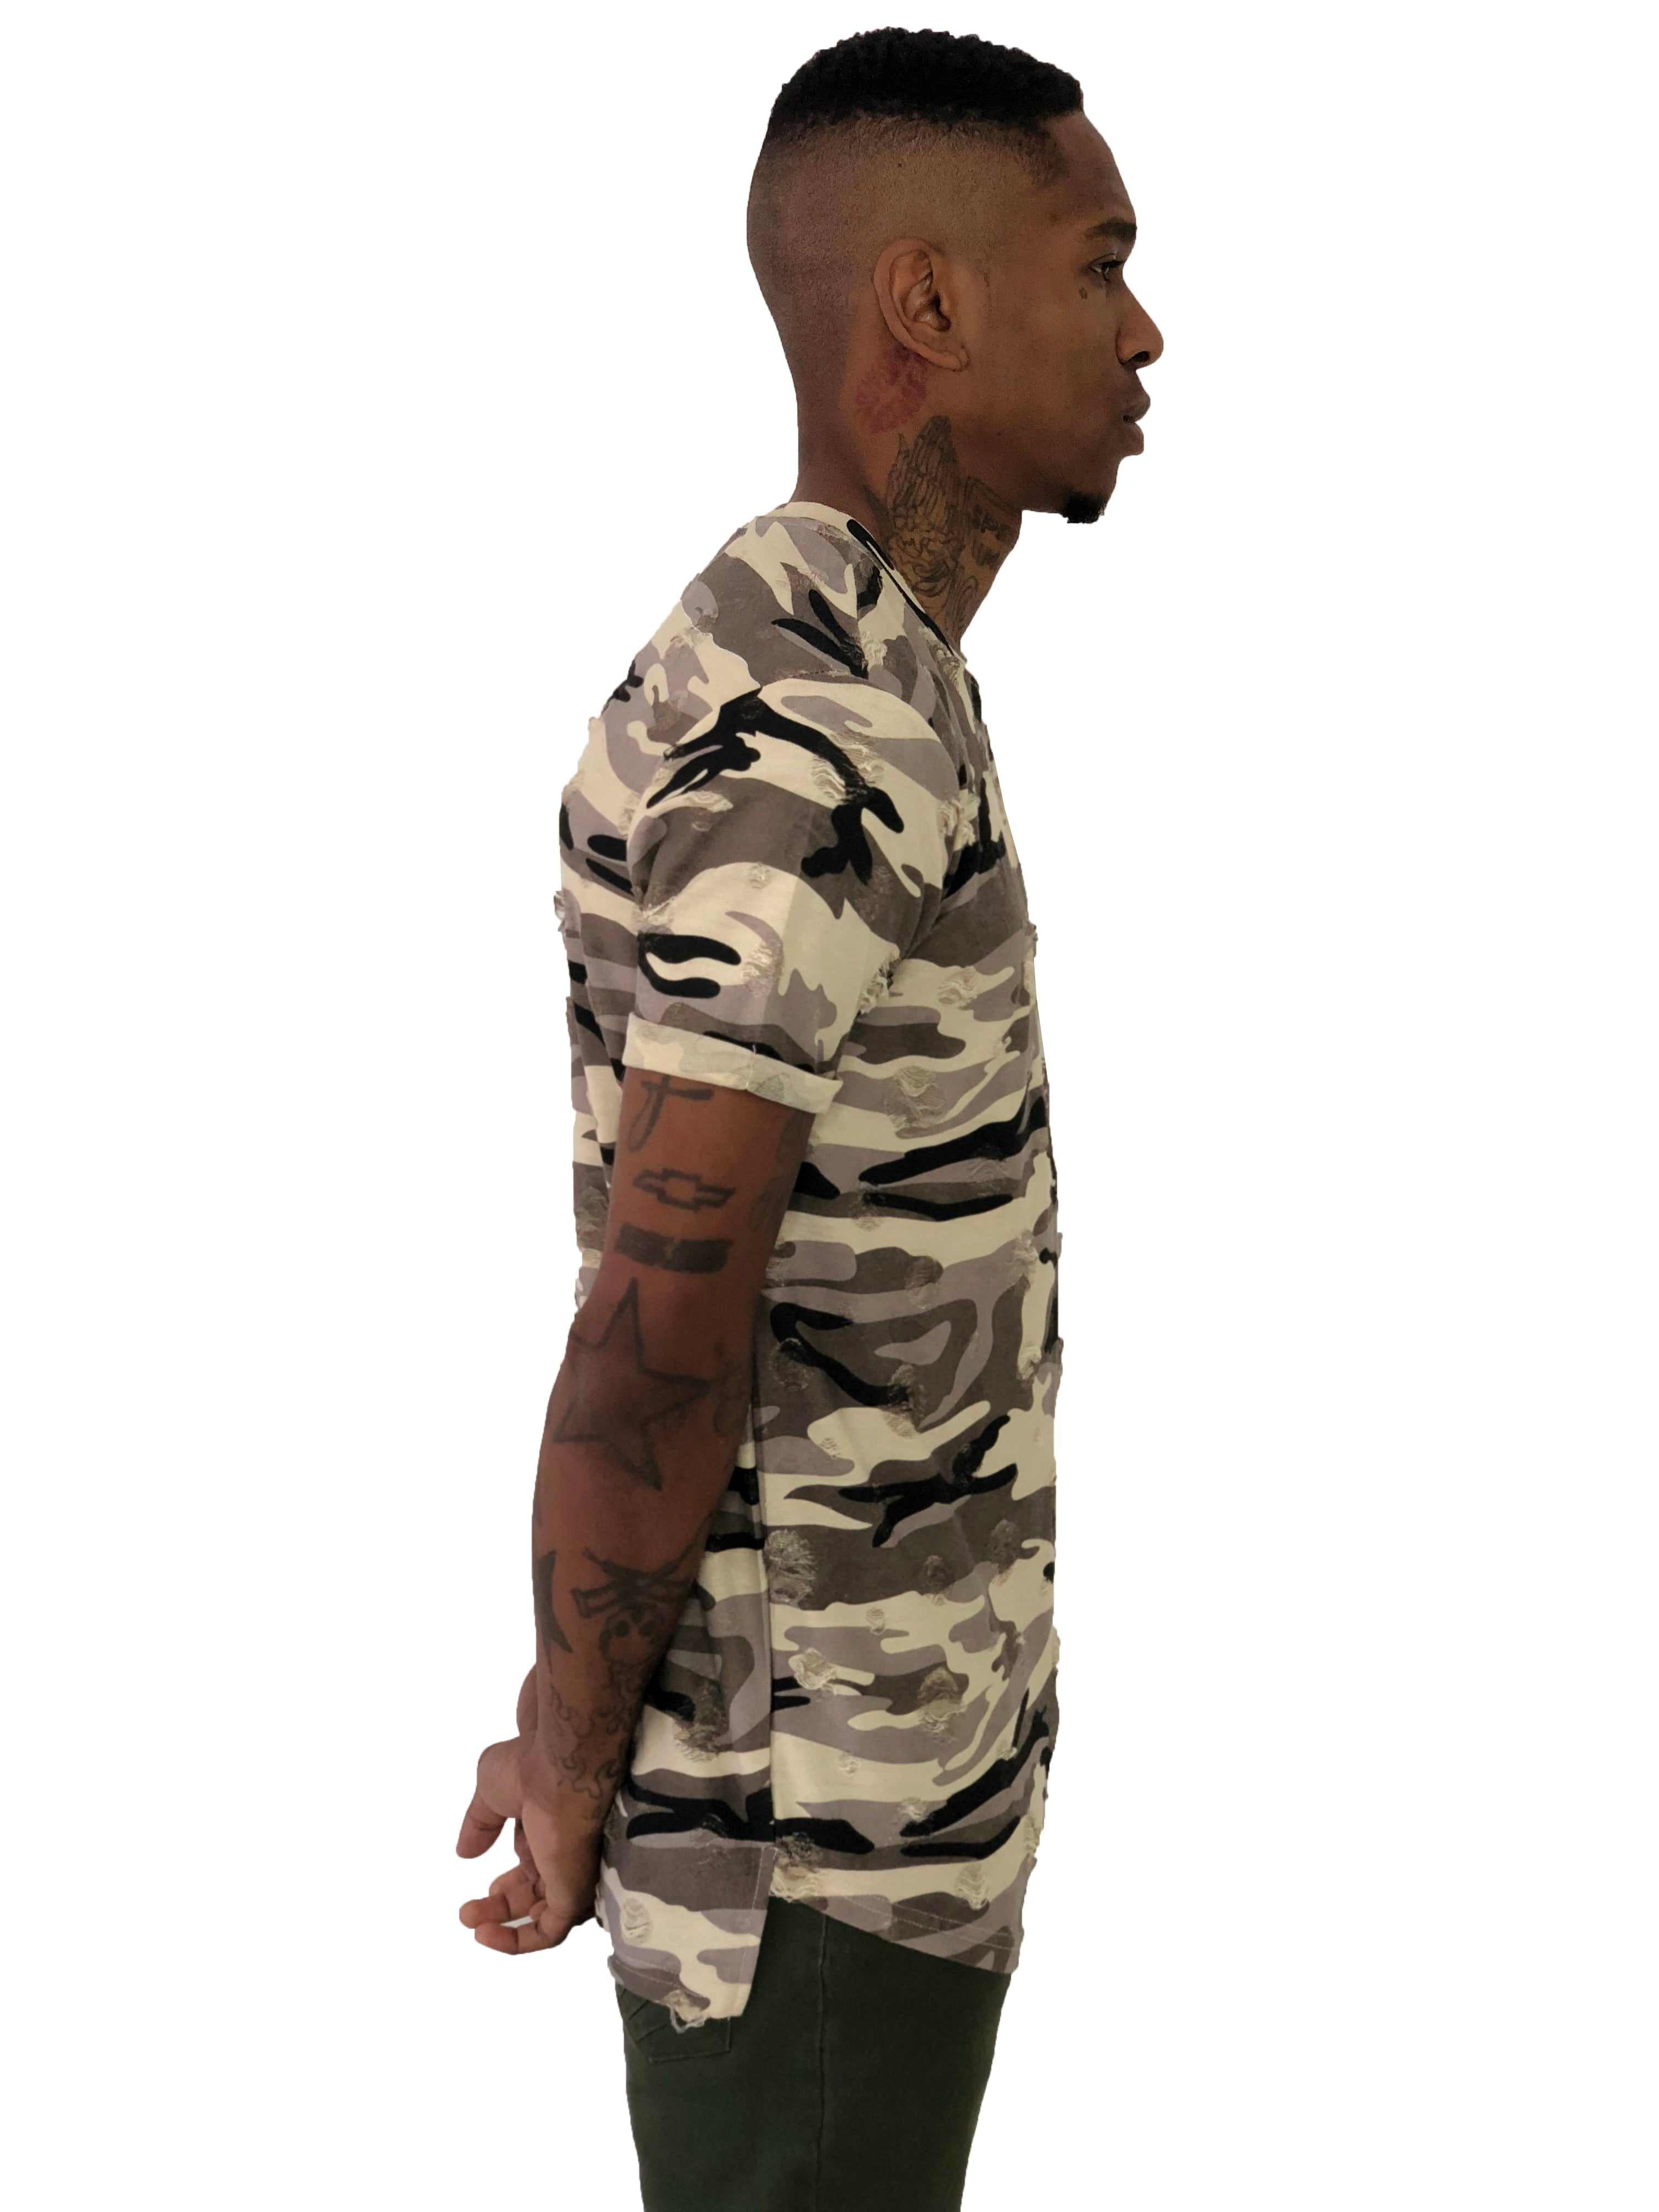 Distressed Texture Camo Shirt by Project X Paris 2